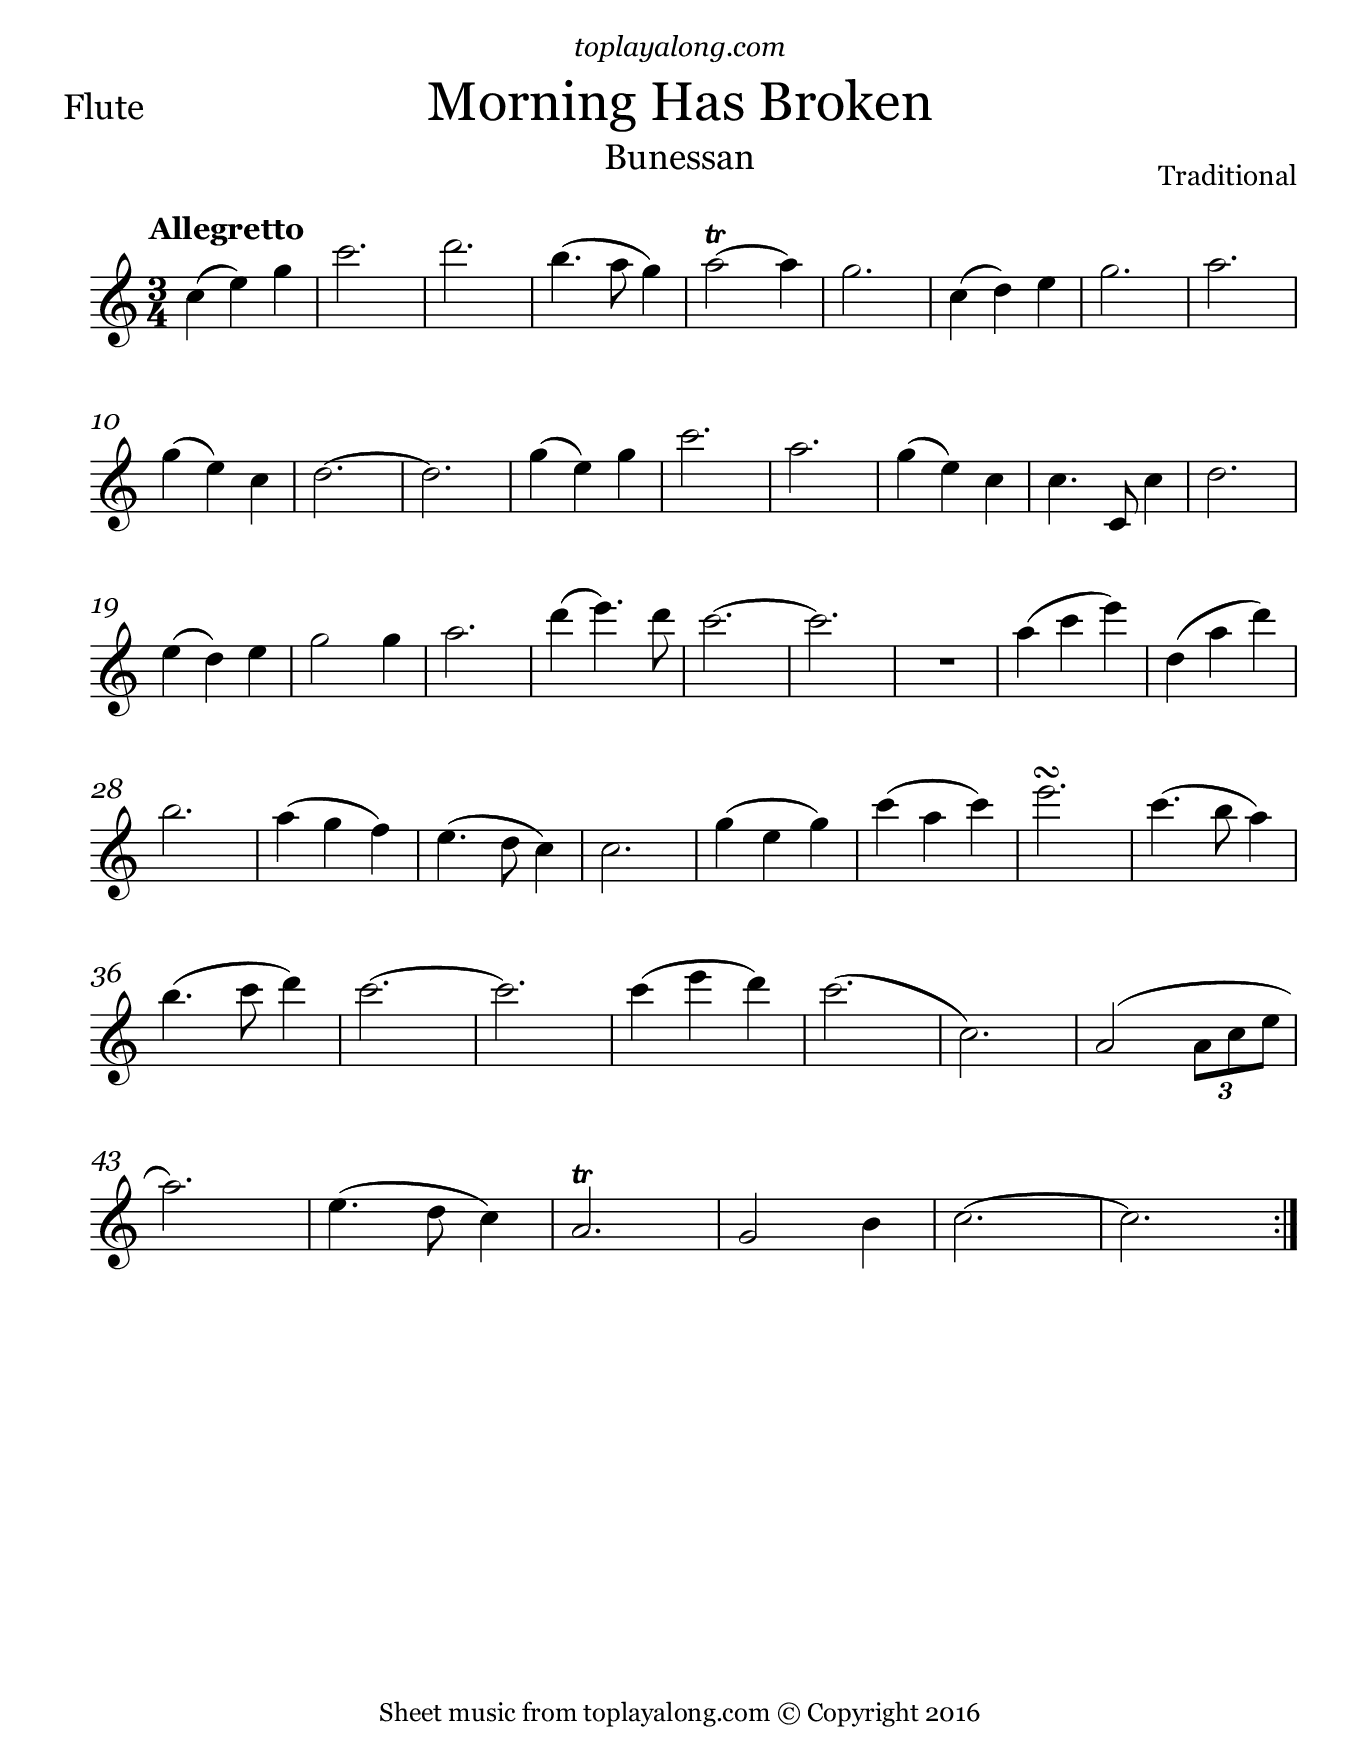 Morning Has Broken (Bunessan). Sheet music for Flute, page 1.